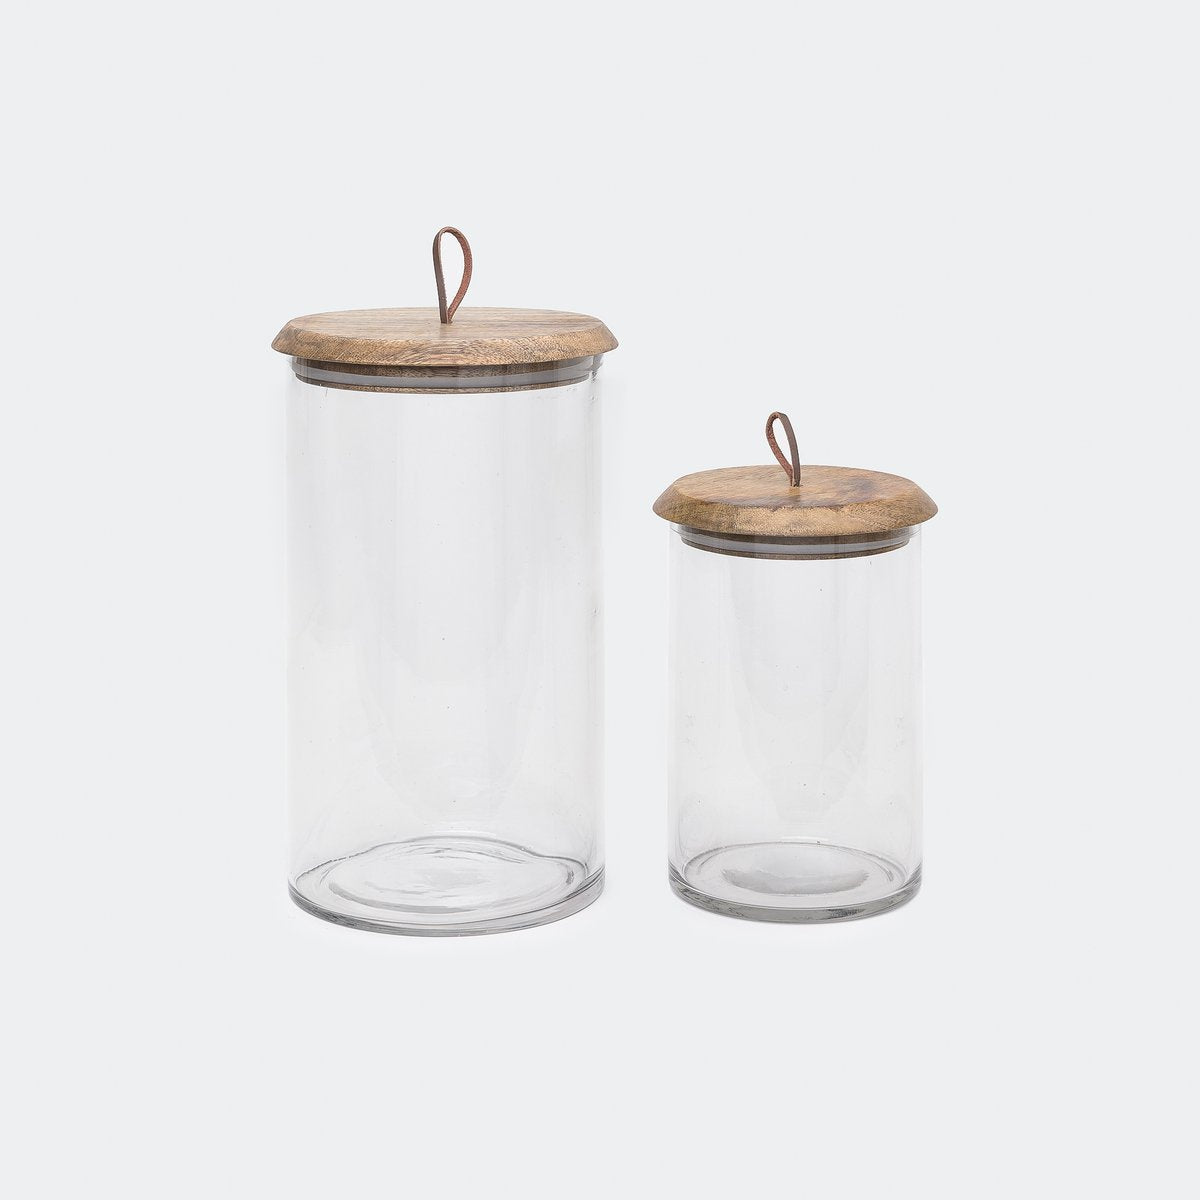 MANGO WOOD AND GLASS COVERED JARS